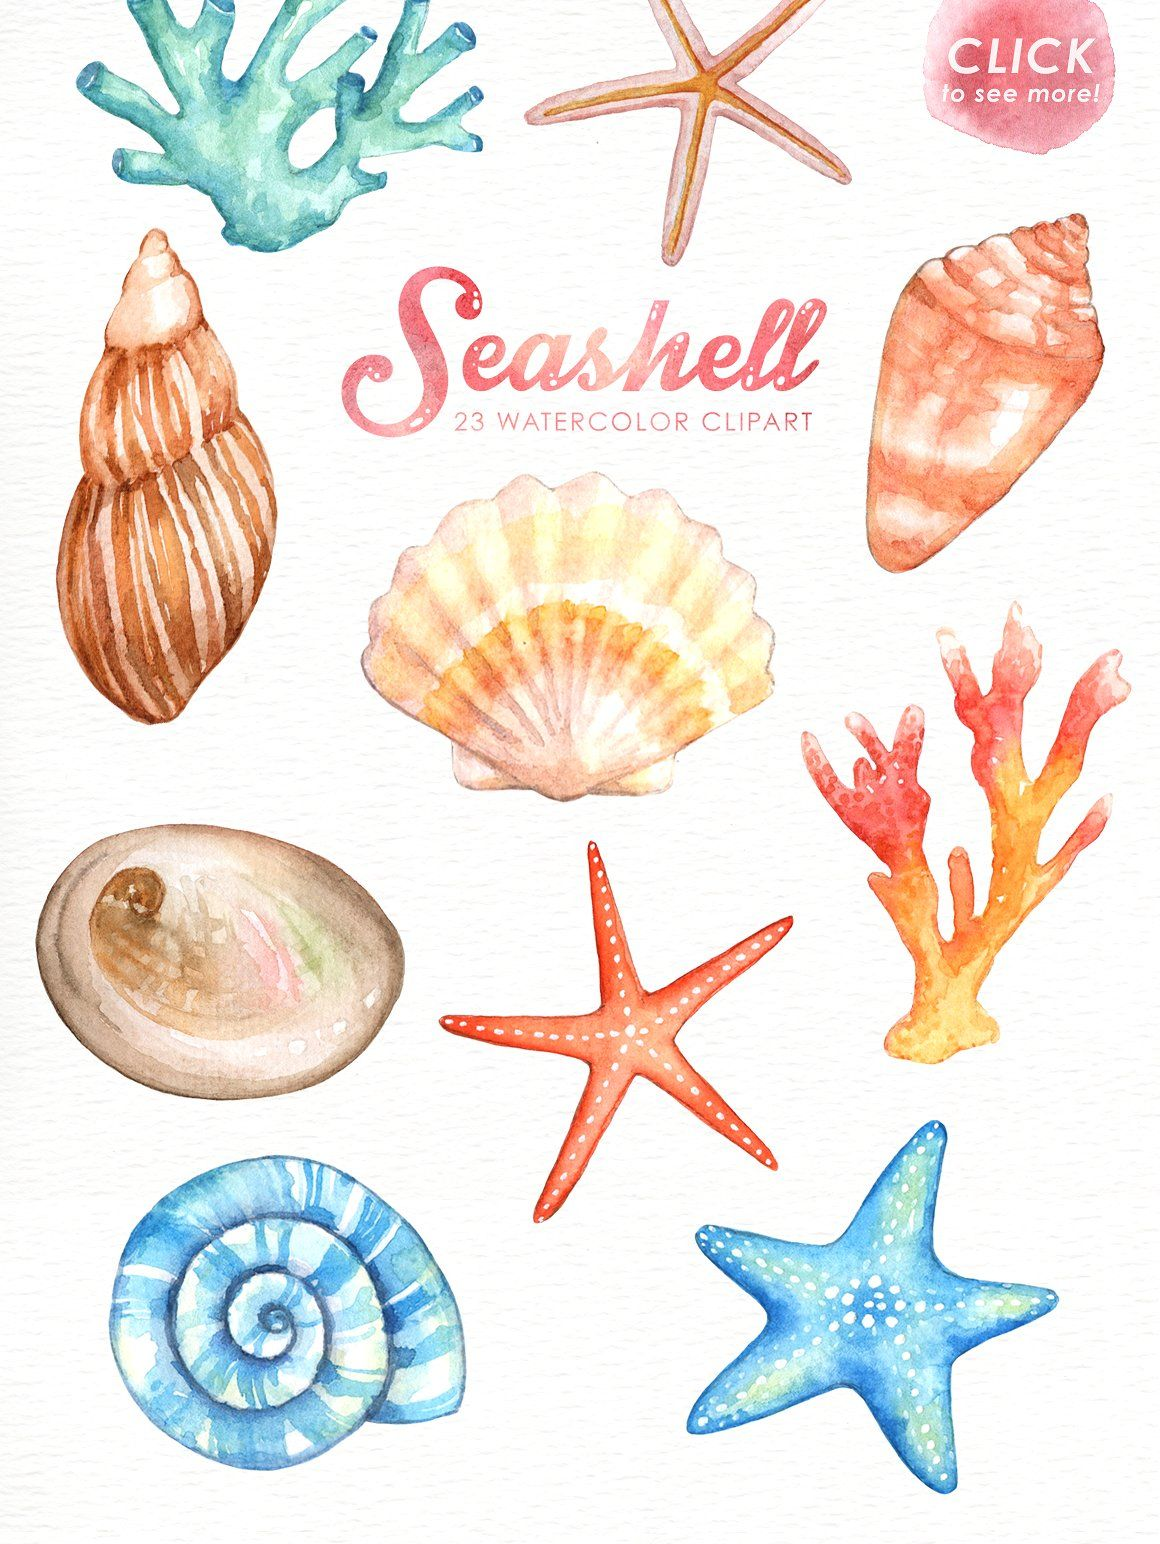 Seashell Watercolor cliparts by everysunsun on.